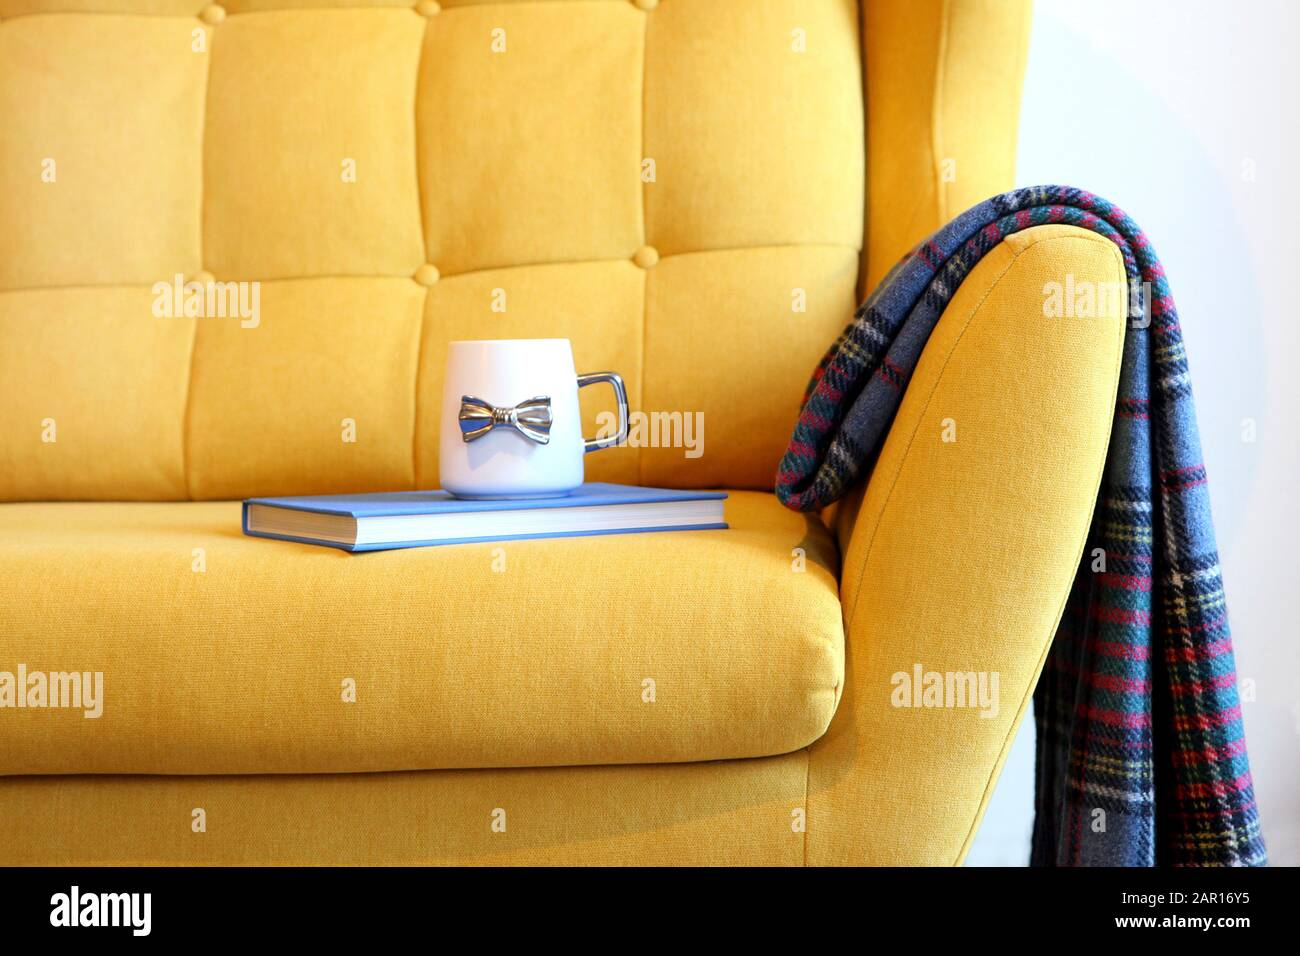 Cup of tea and blue book on yellow coach with blanket. Still life details in home interior of living room. Cozy home interior, home comfort concept Stock Photo